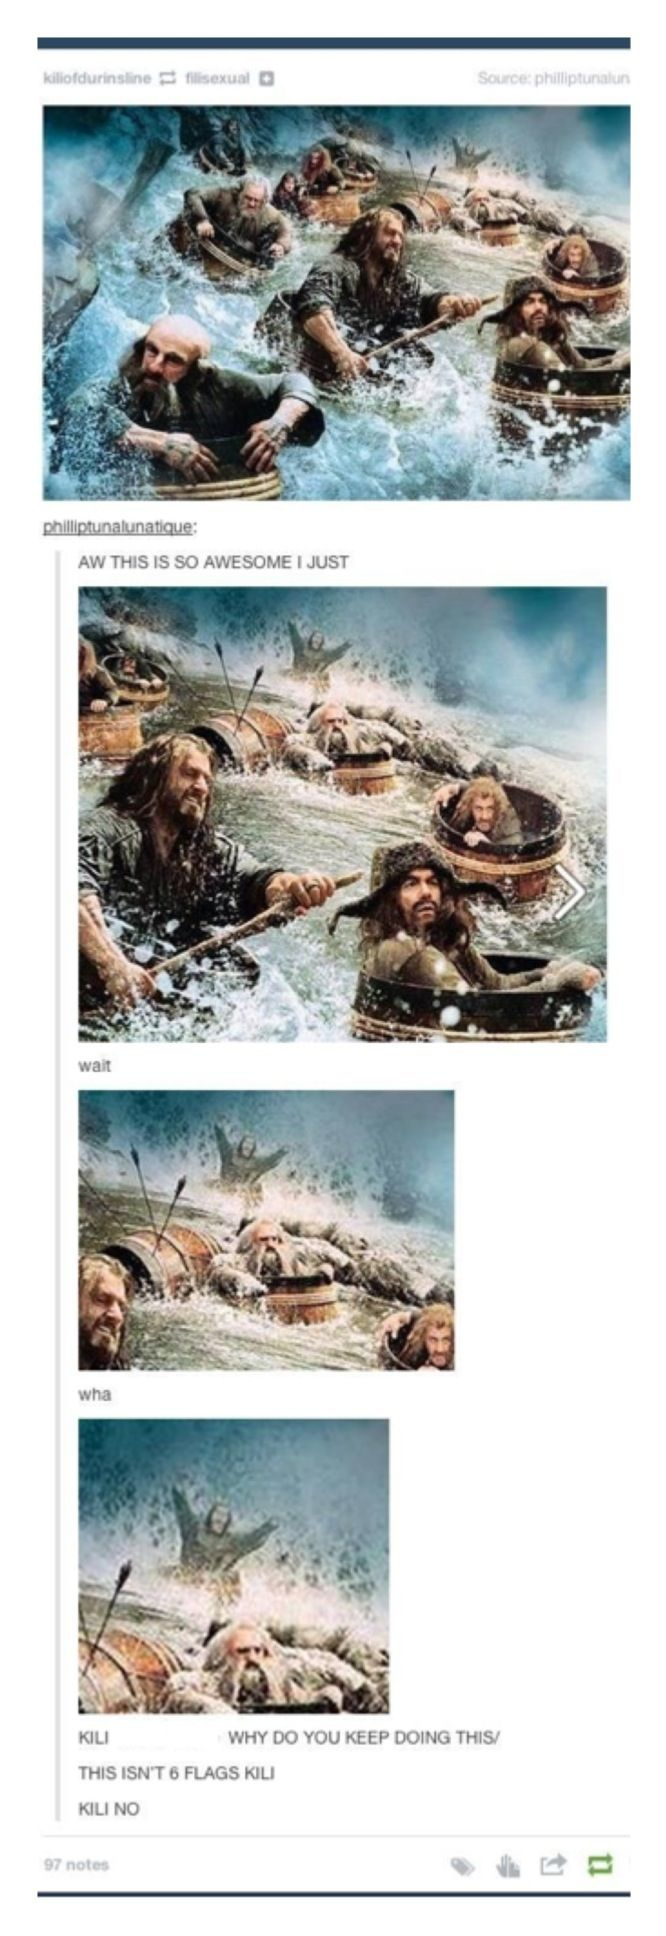 KILI. NO. <<< are we not going to mention how he just got shot in the leg in this scene? With a poisonous arrow? Kili is just the king of being optimistic...